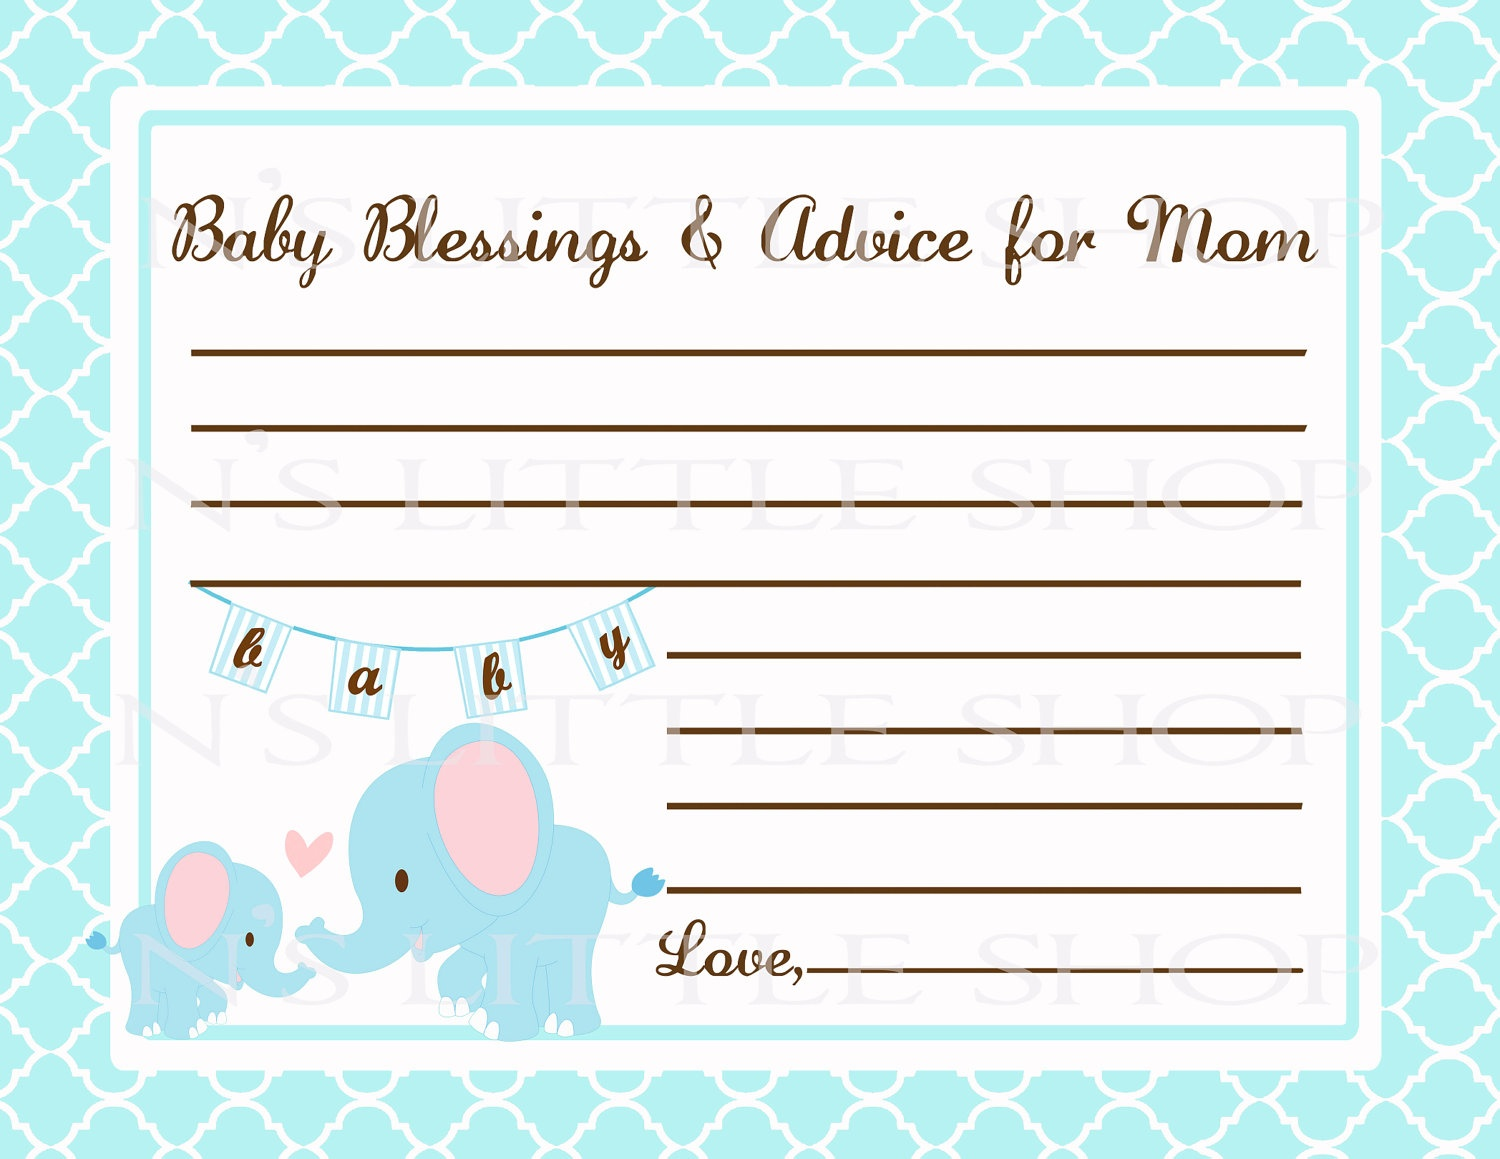 Free Printable Baby Shower Advice Cards - Printable Cards - Free Printable Baby Advice Cards